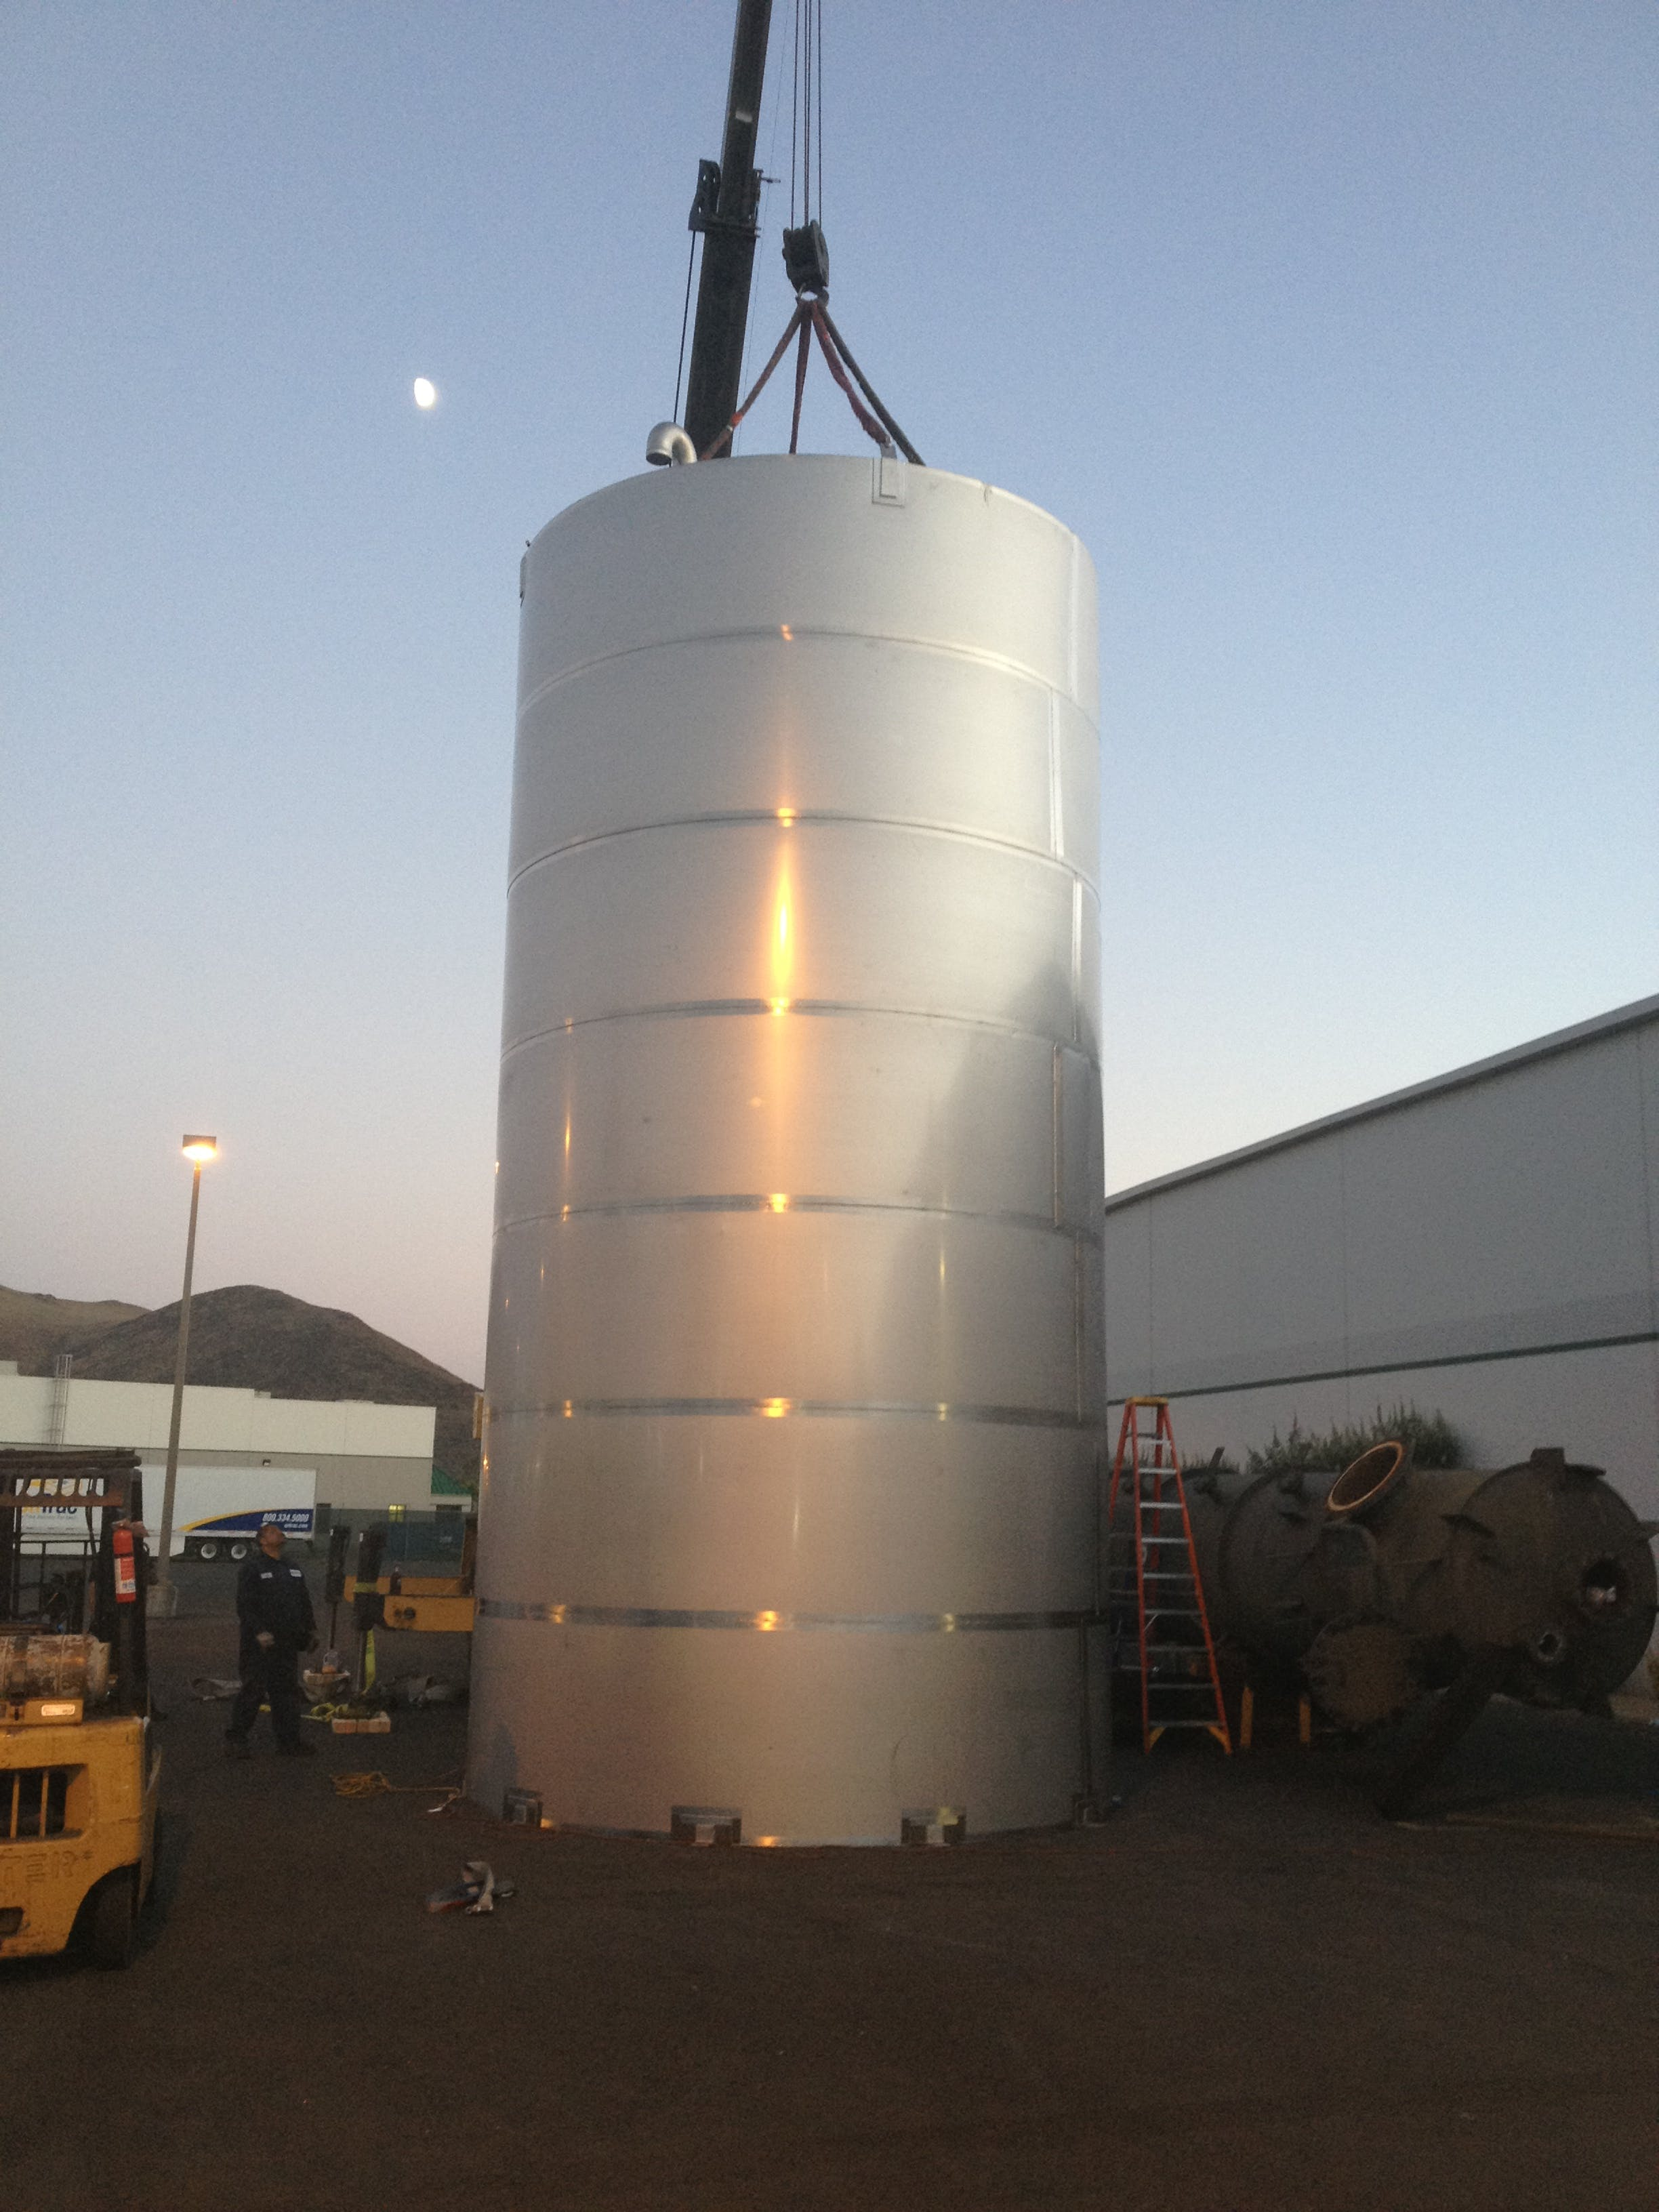 20K stainless steel single shell holding tank  Holding tank sold by Hood-EIC, LLC Tank Division